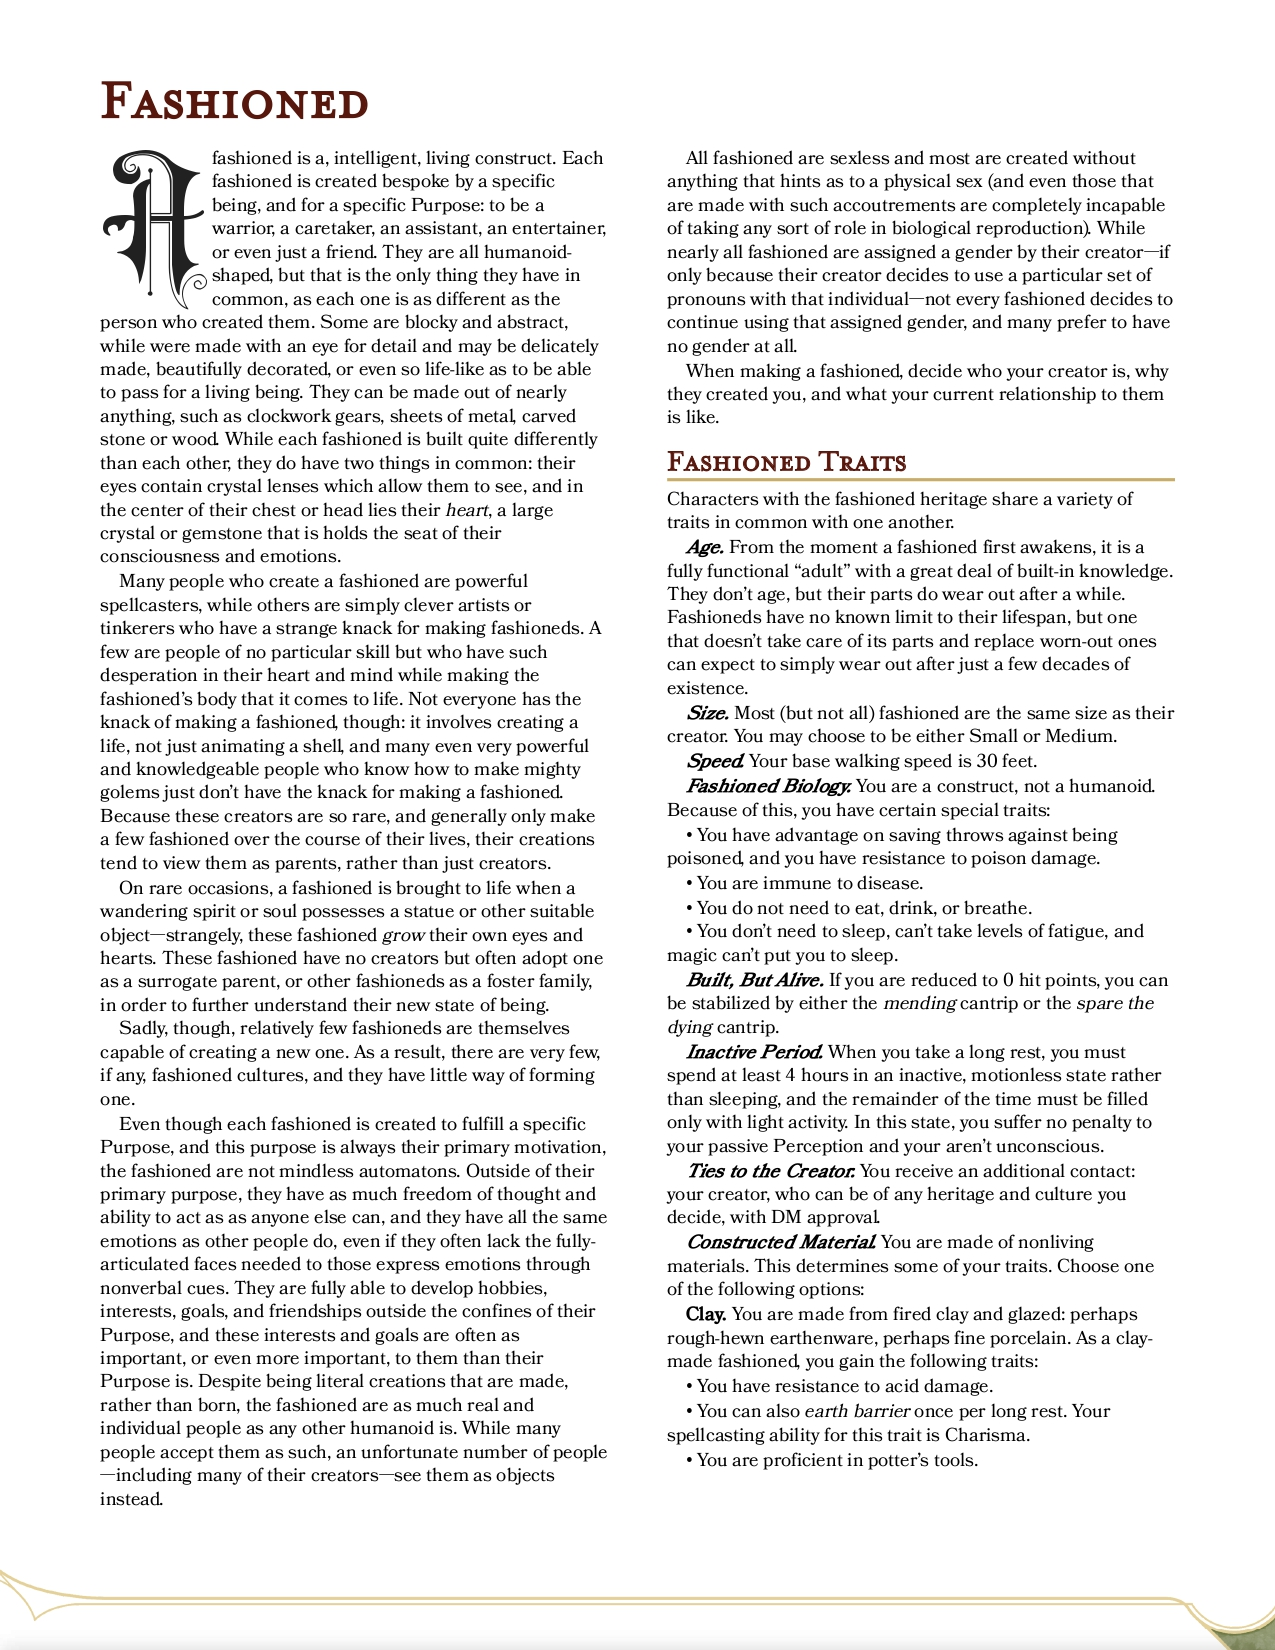 My Heritages and Cultures_page-0005.jpg